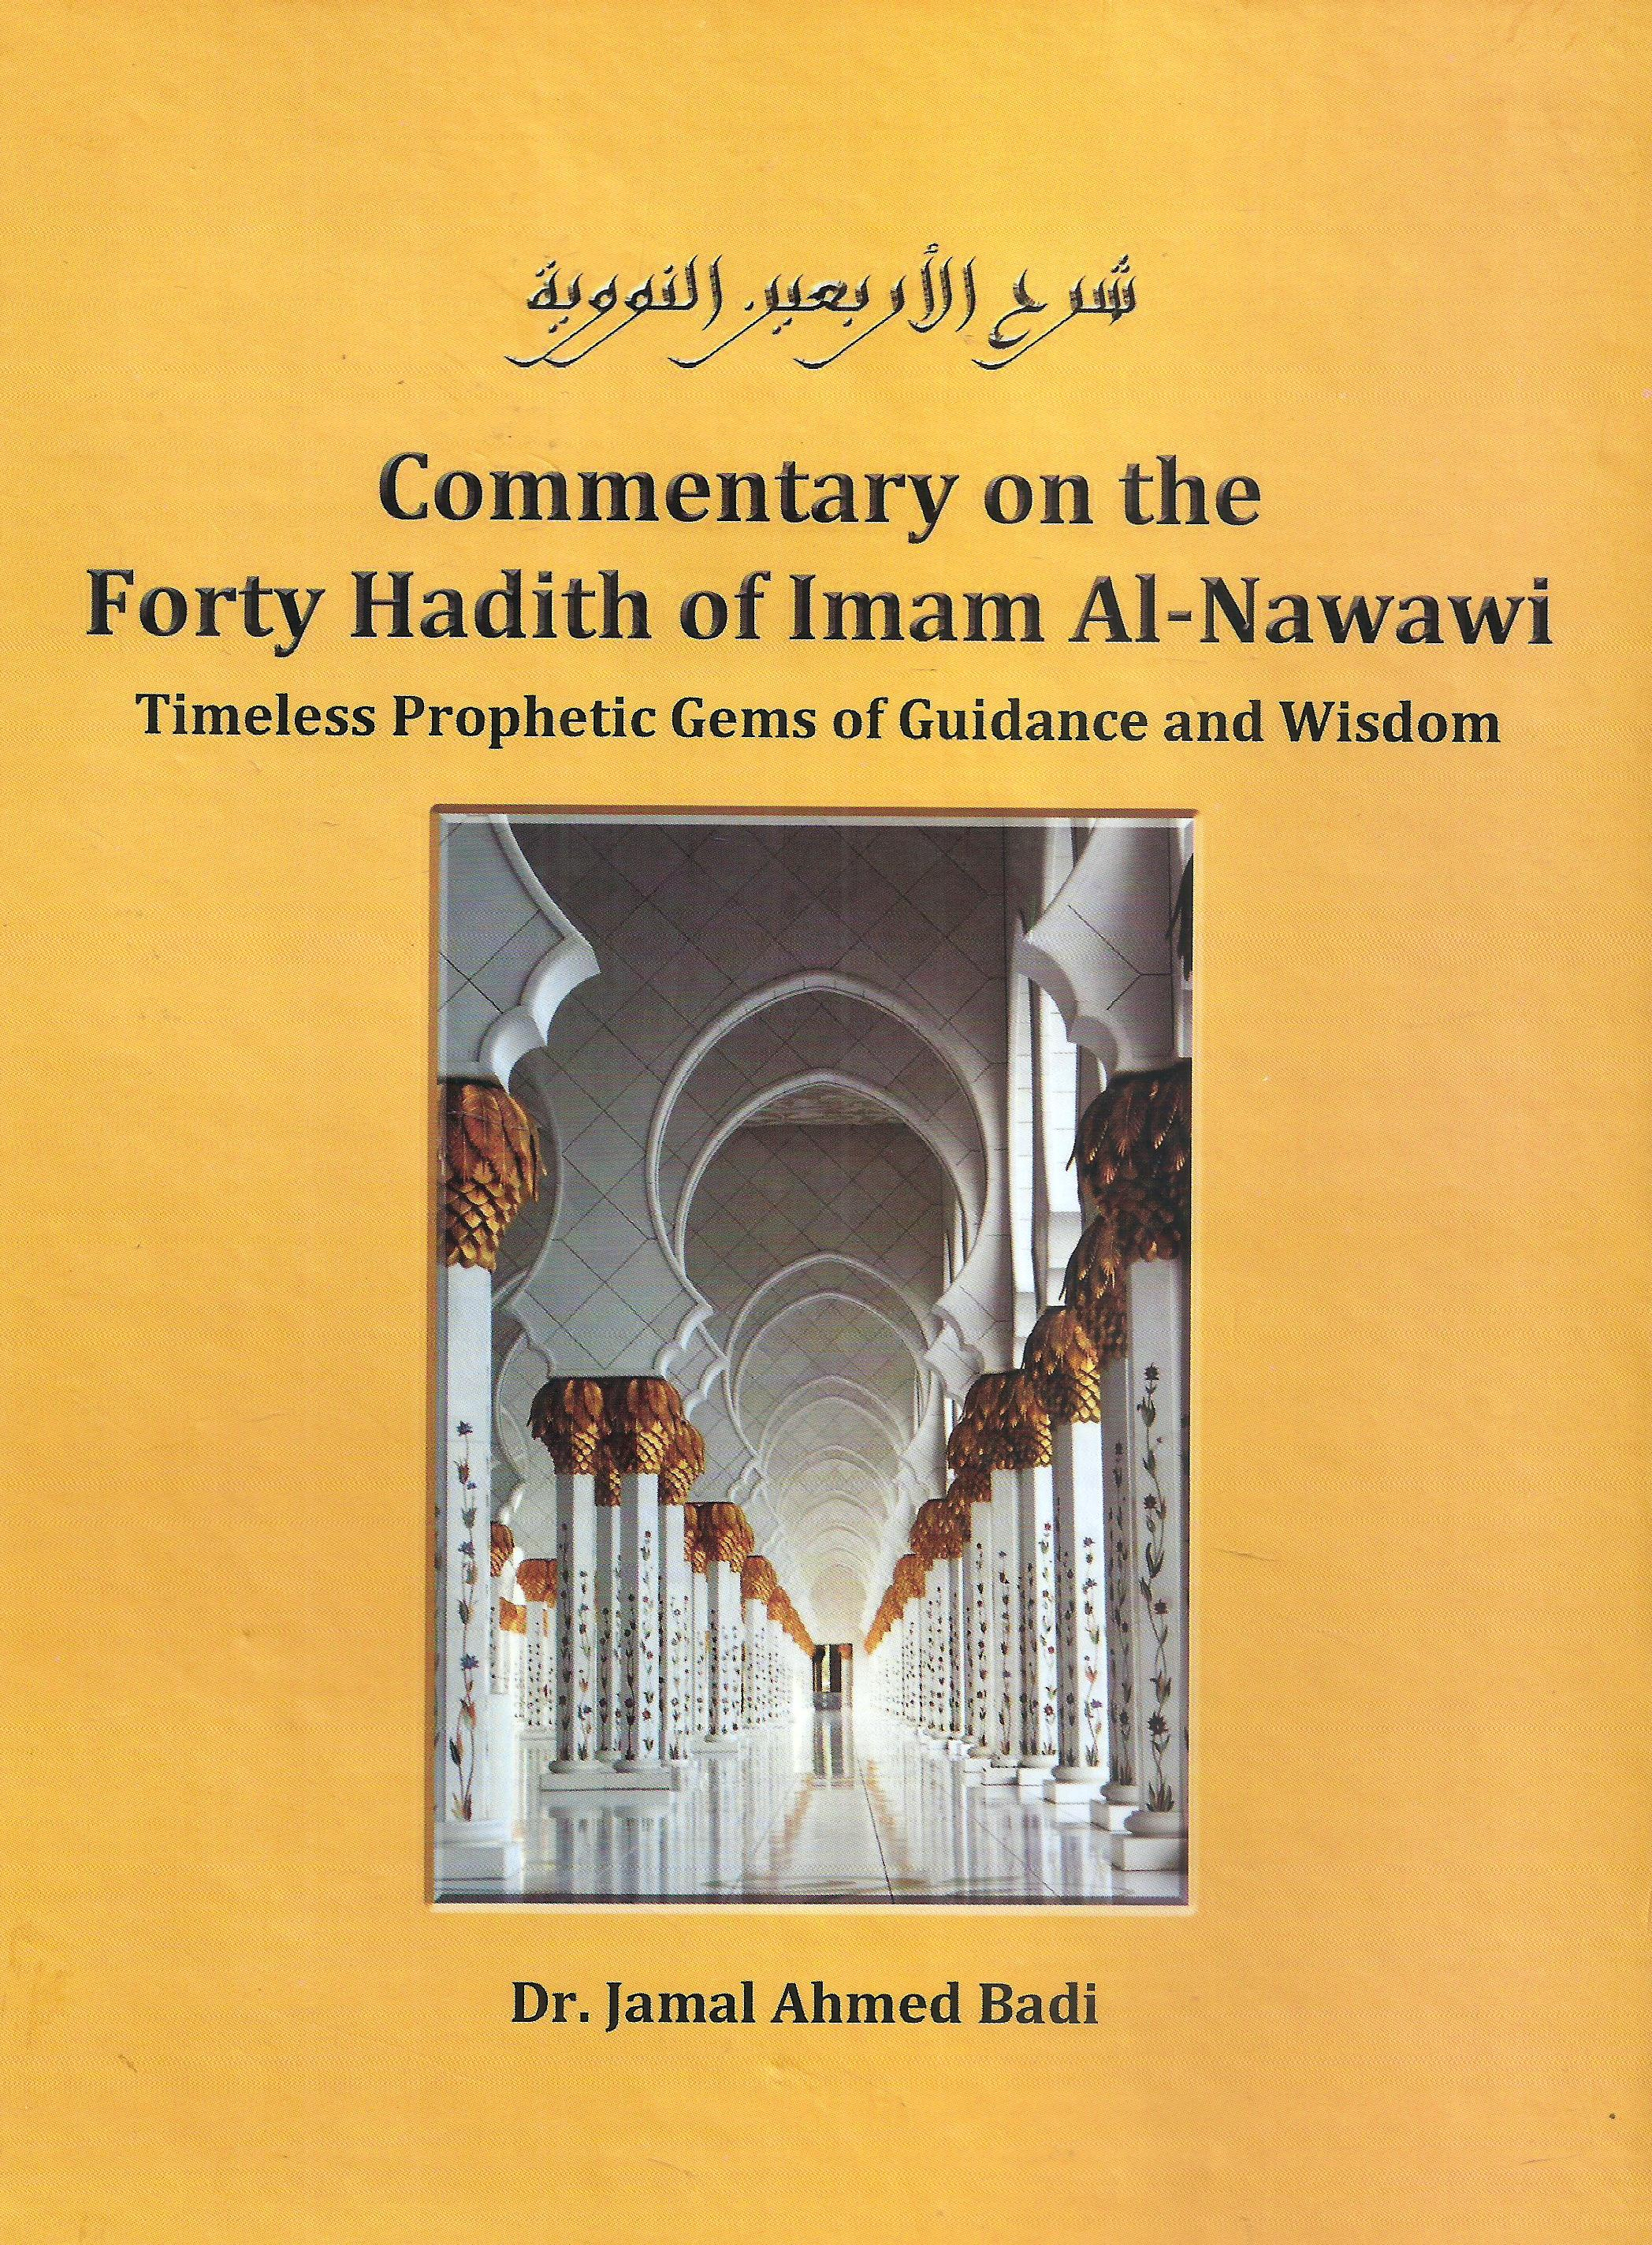 Commentary on the Forty Hadith of Imam Al Nawawi